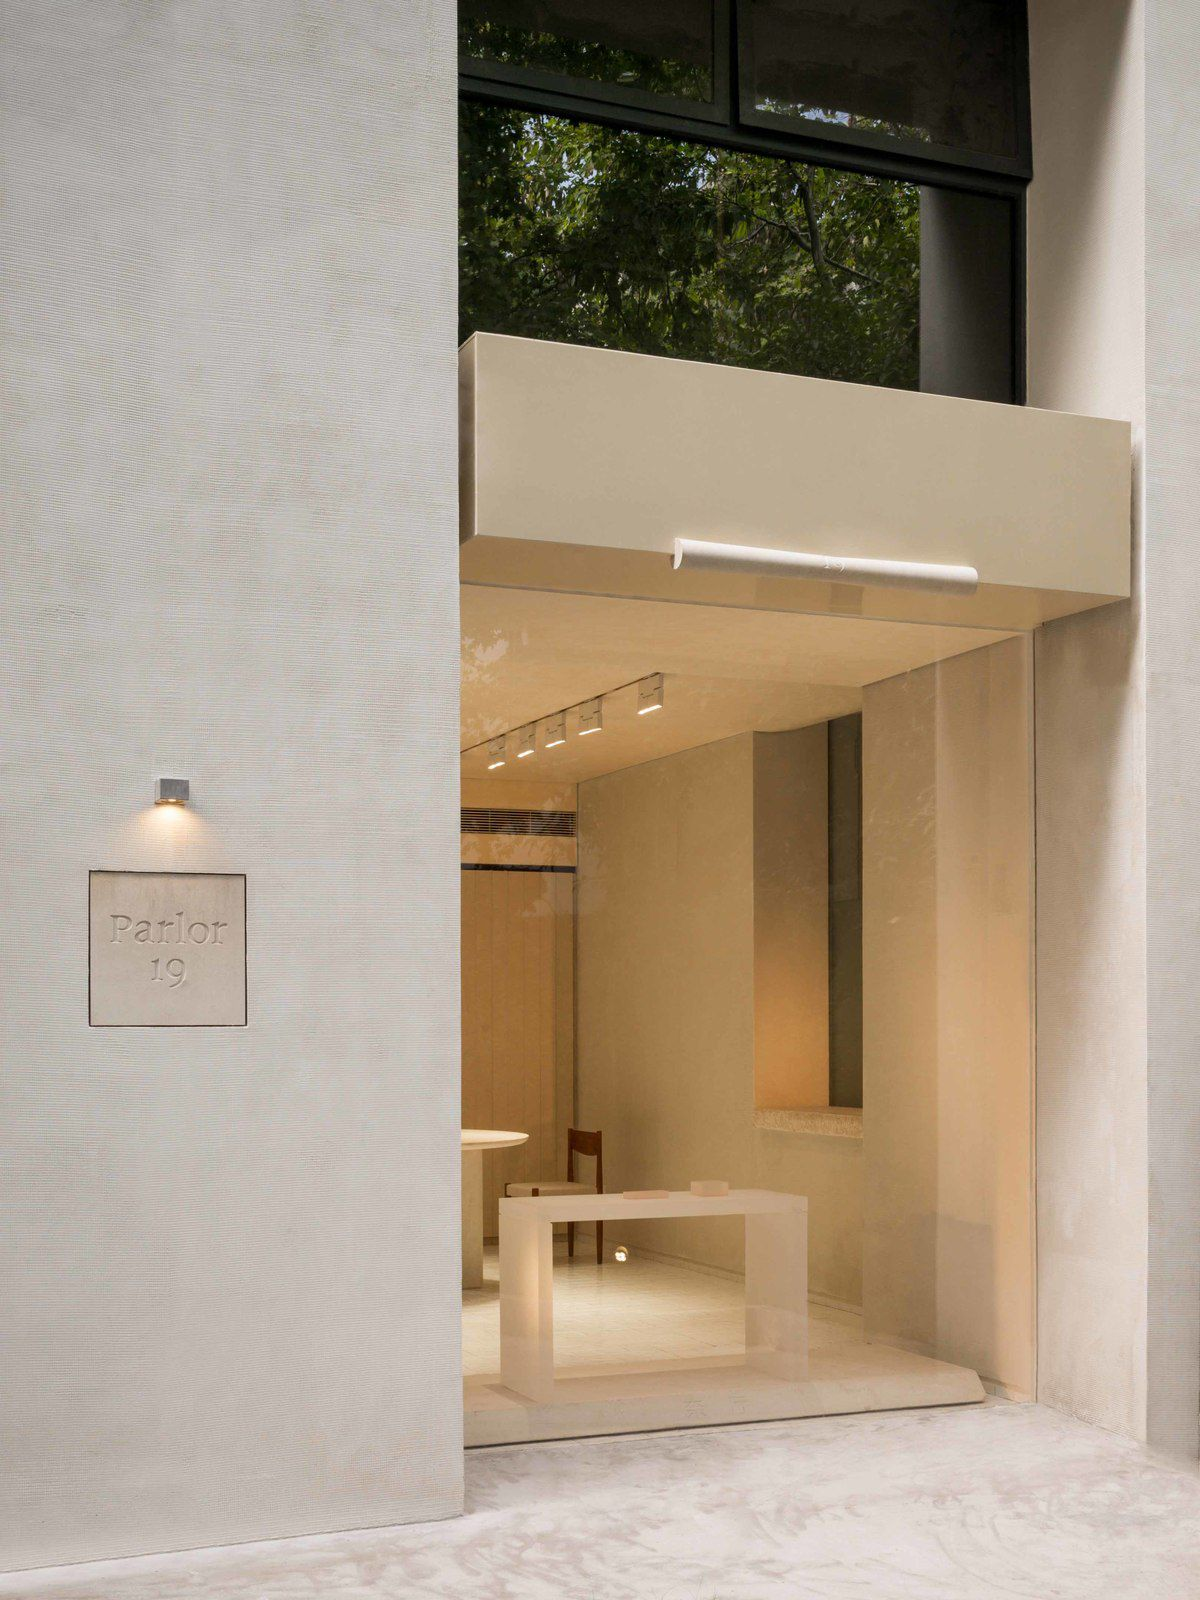 PARLOR19 JEWELRY SHOP IN CHINA, DESIGNED BY SAY ARCHITECTS